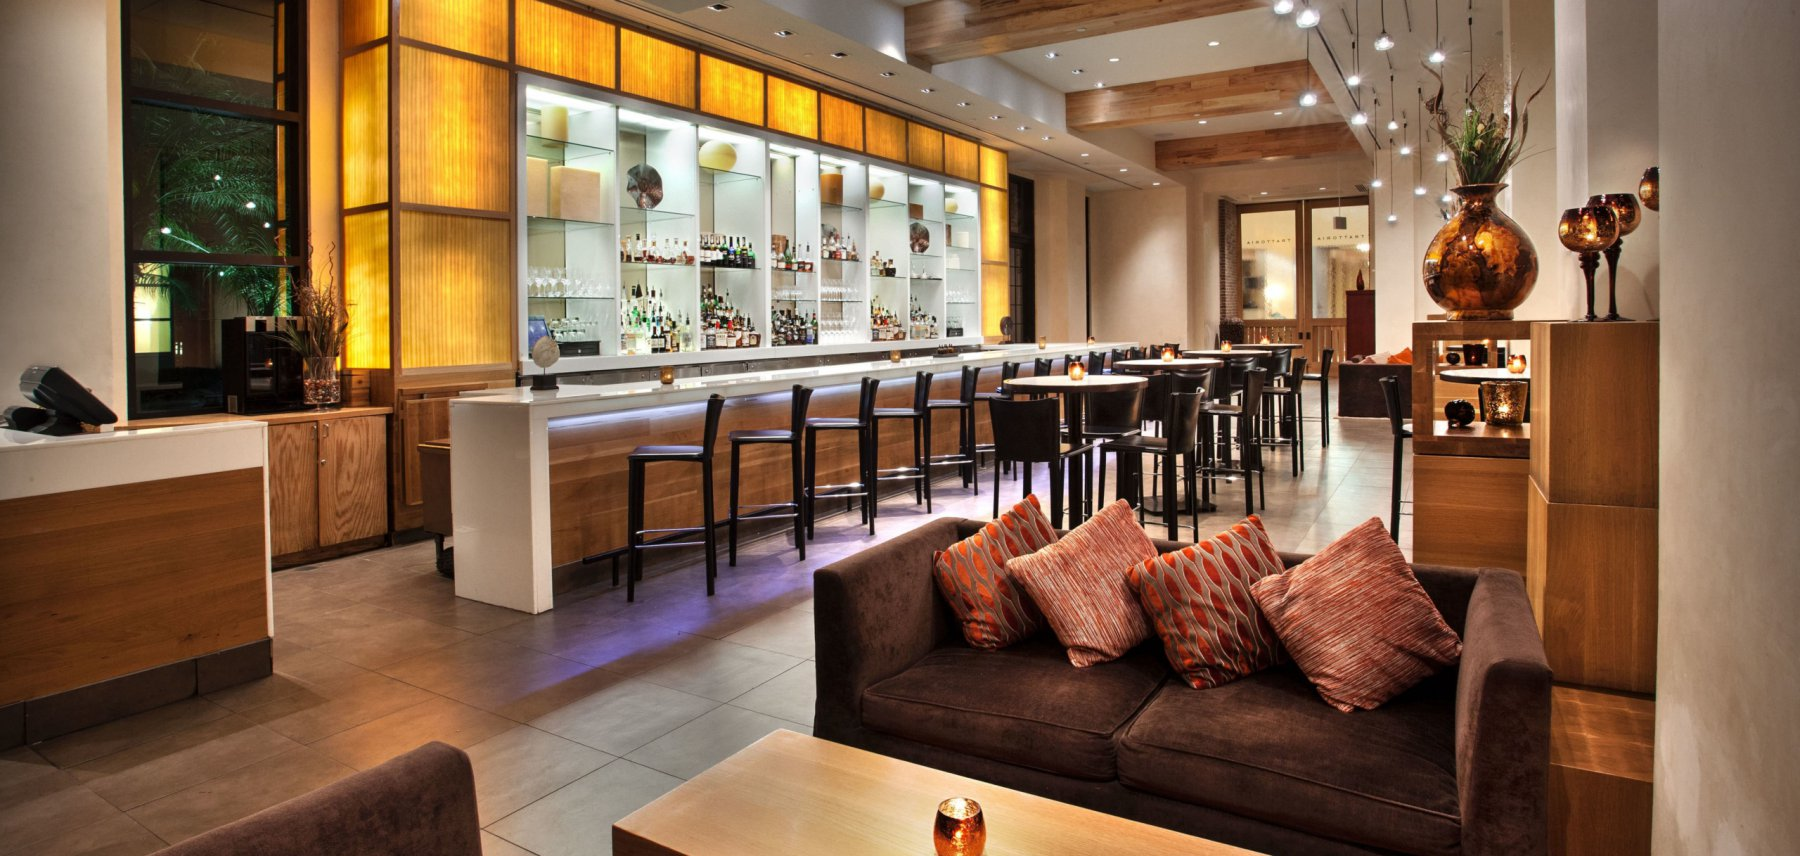 The lounge and bar area at Il Mulino restaurant at the Walt Disney World Swan Resort